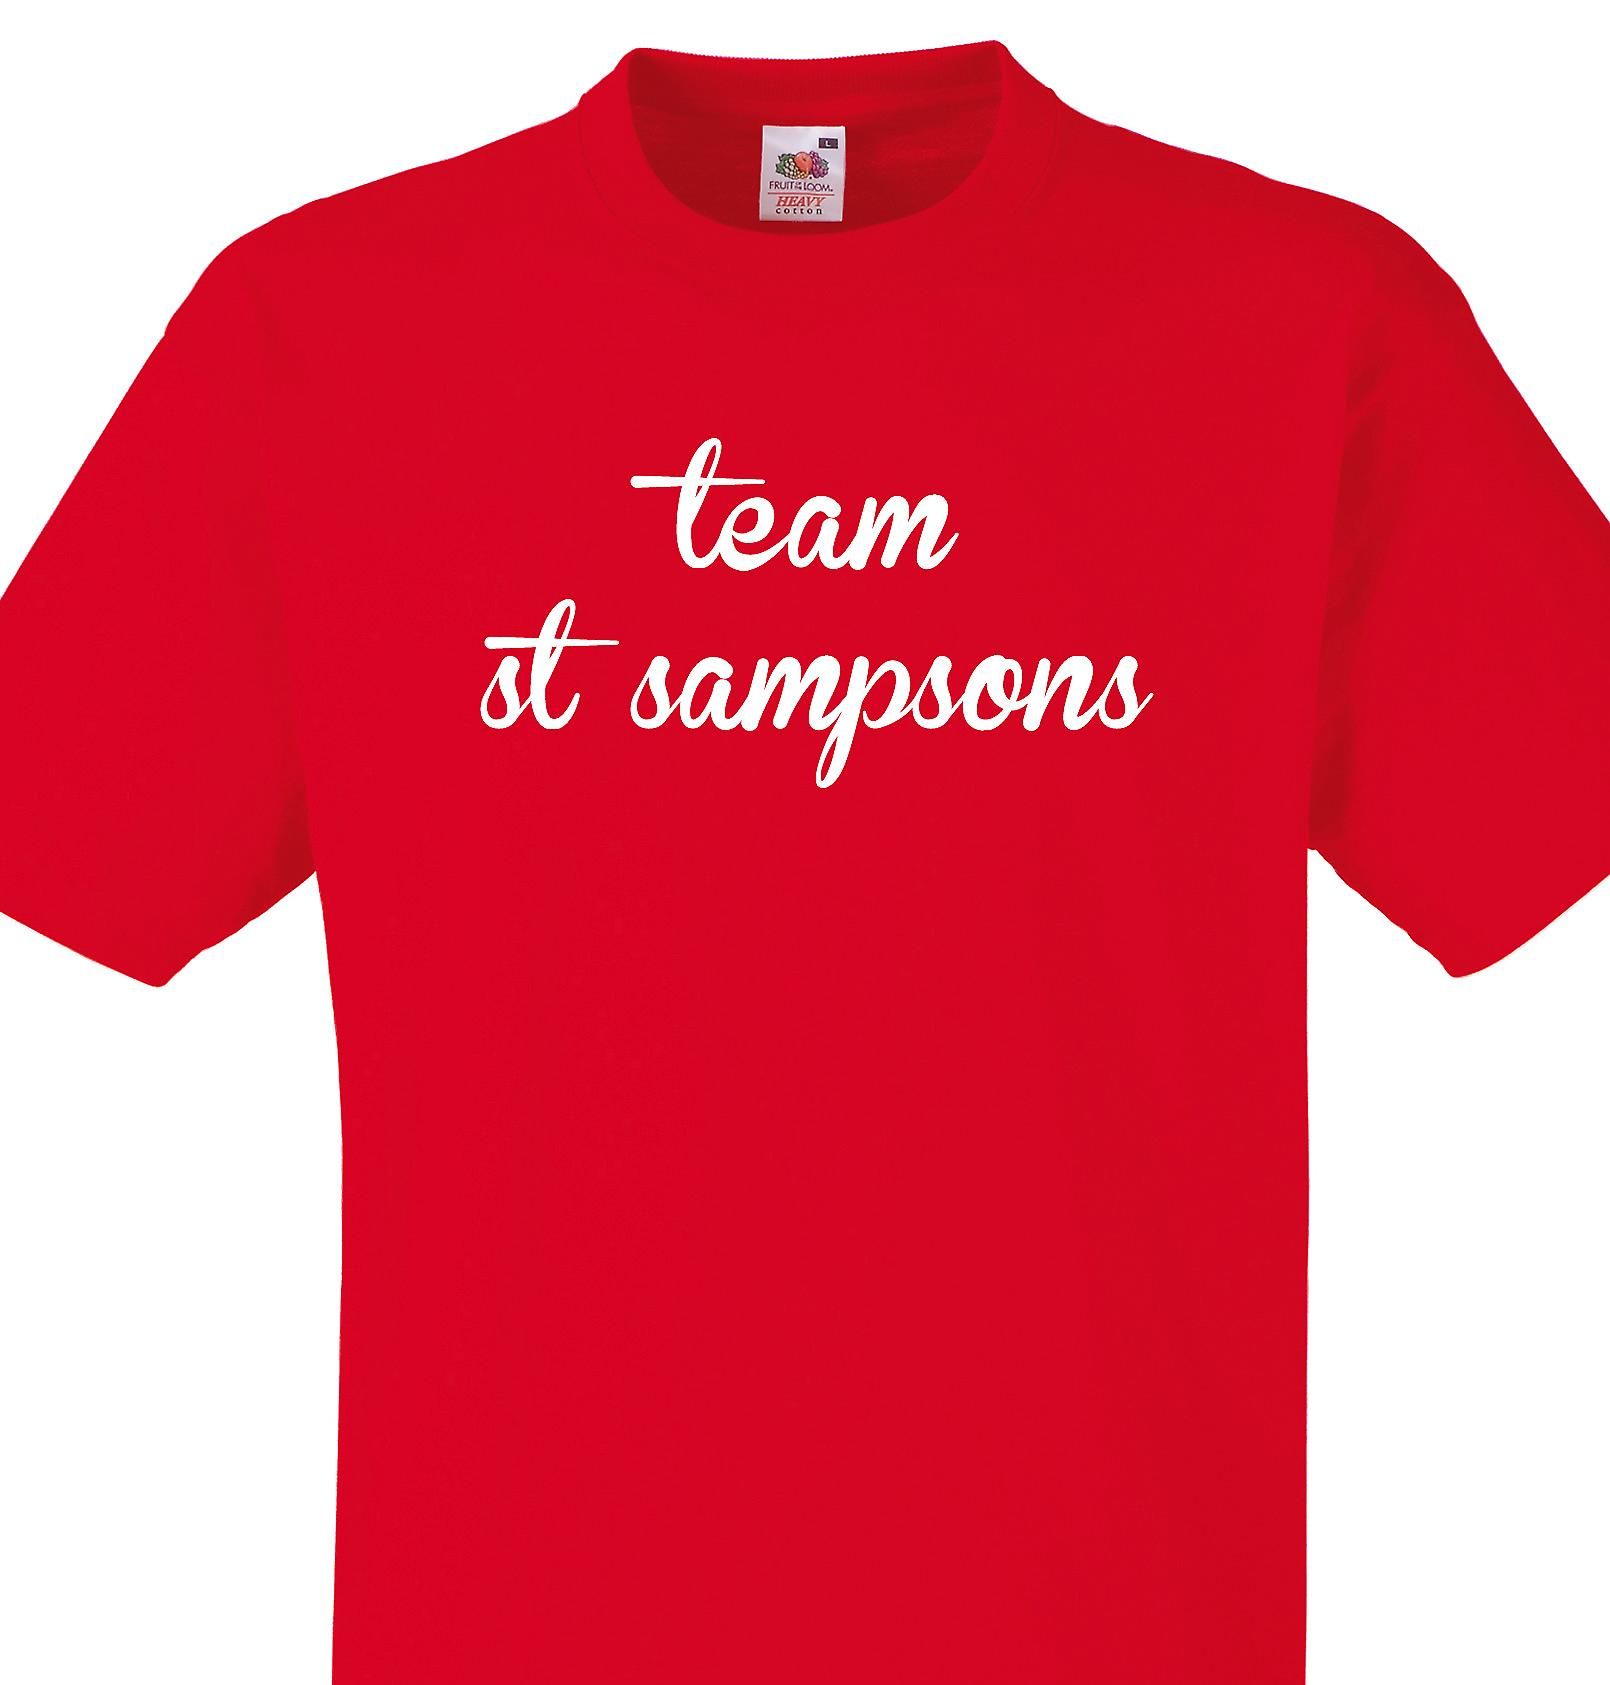 Team St sampsons Red T shirt